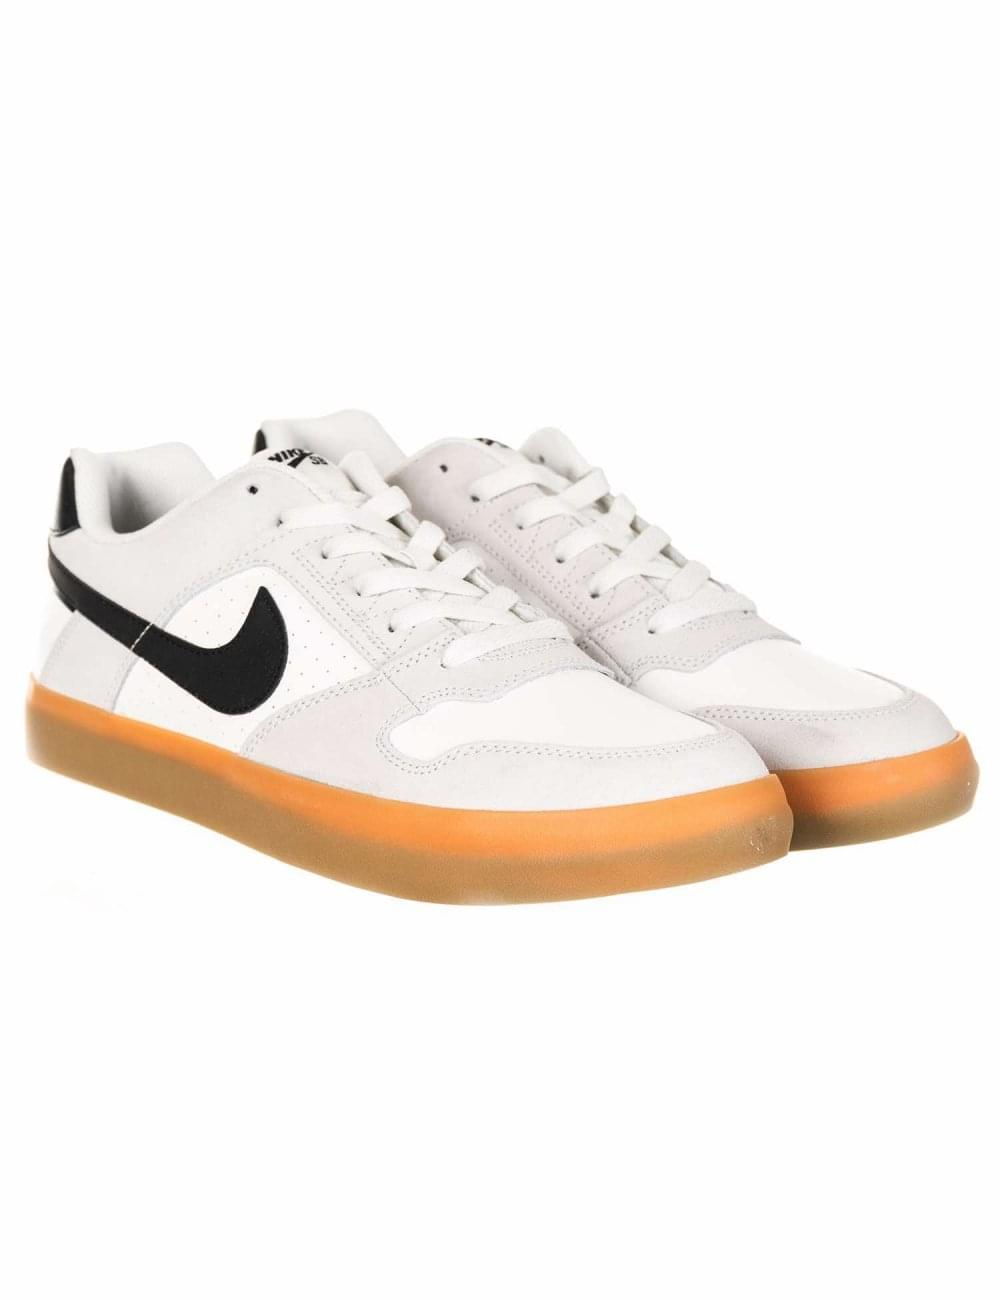 profundo Tutor impulso  Nike SB Delta Force Vulc Trainers - White/Black/Gum - Footwear from Fat  Buddha Store UK